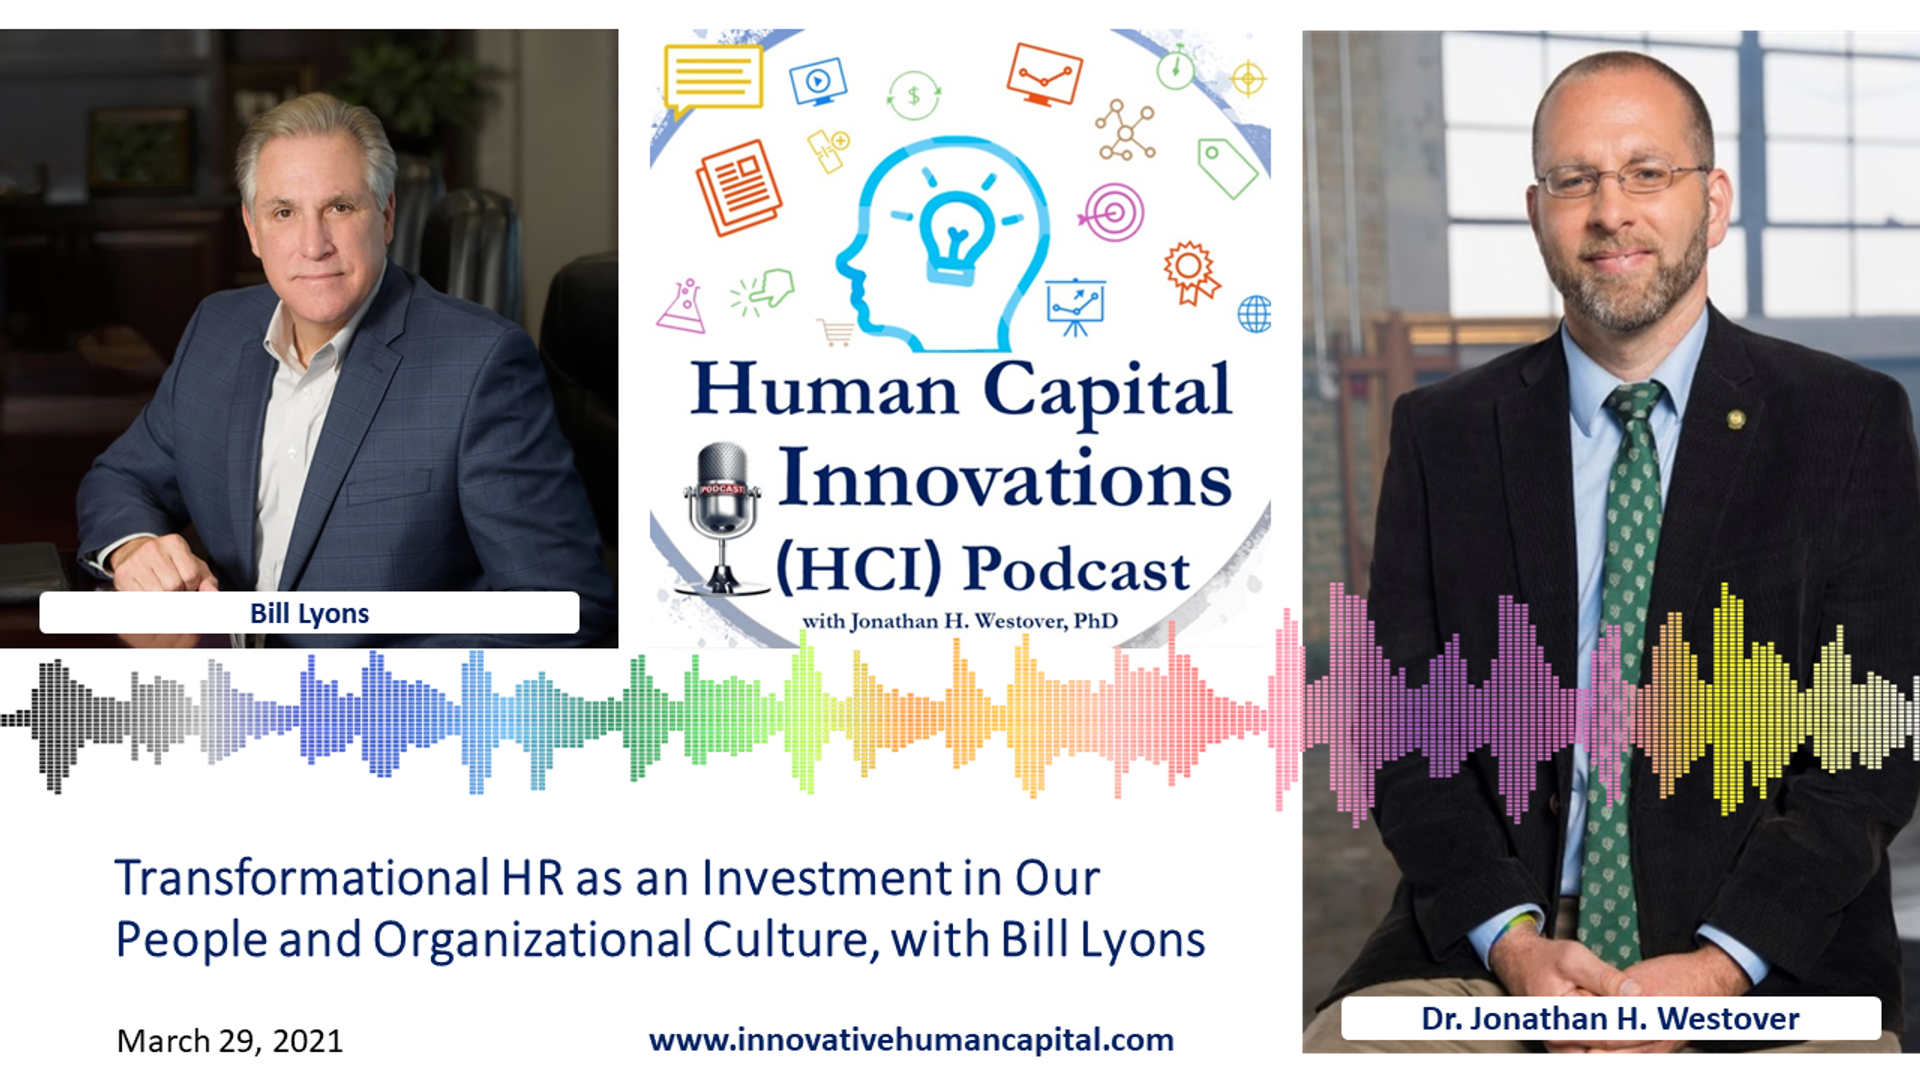 Transformational HR as an Investment in Our People and Culture, with